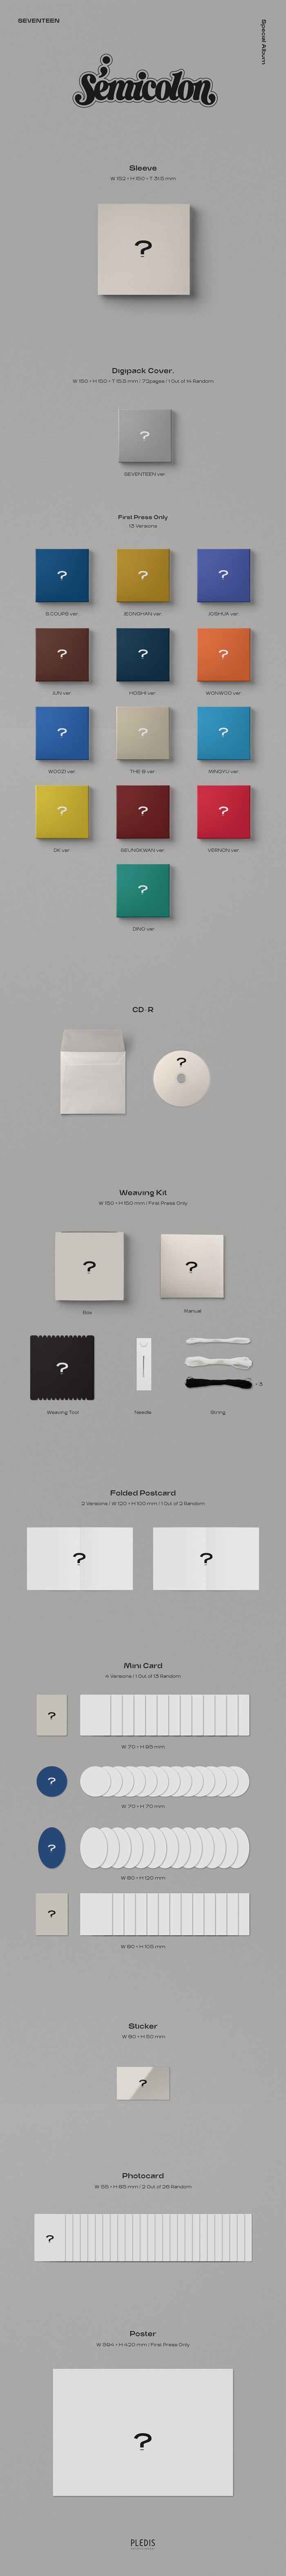 SEVENTEEN - Semicoion [Special Album] product details